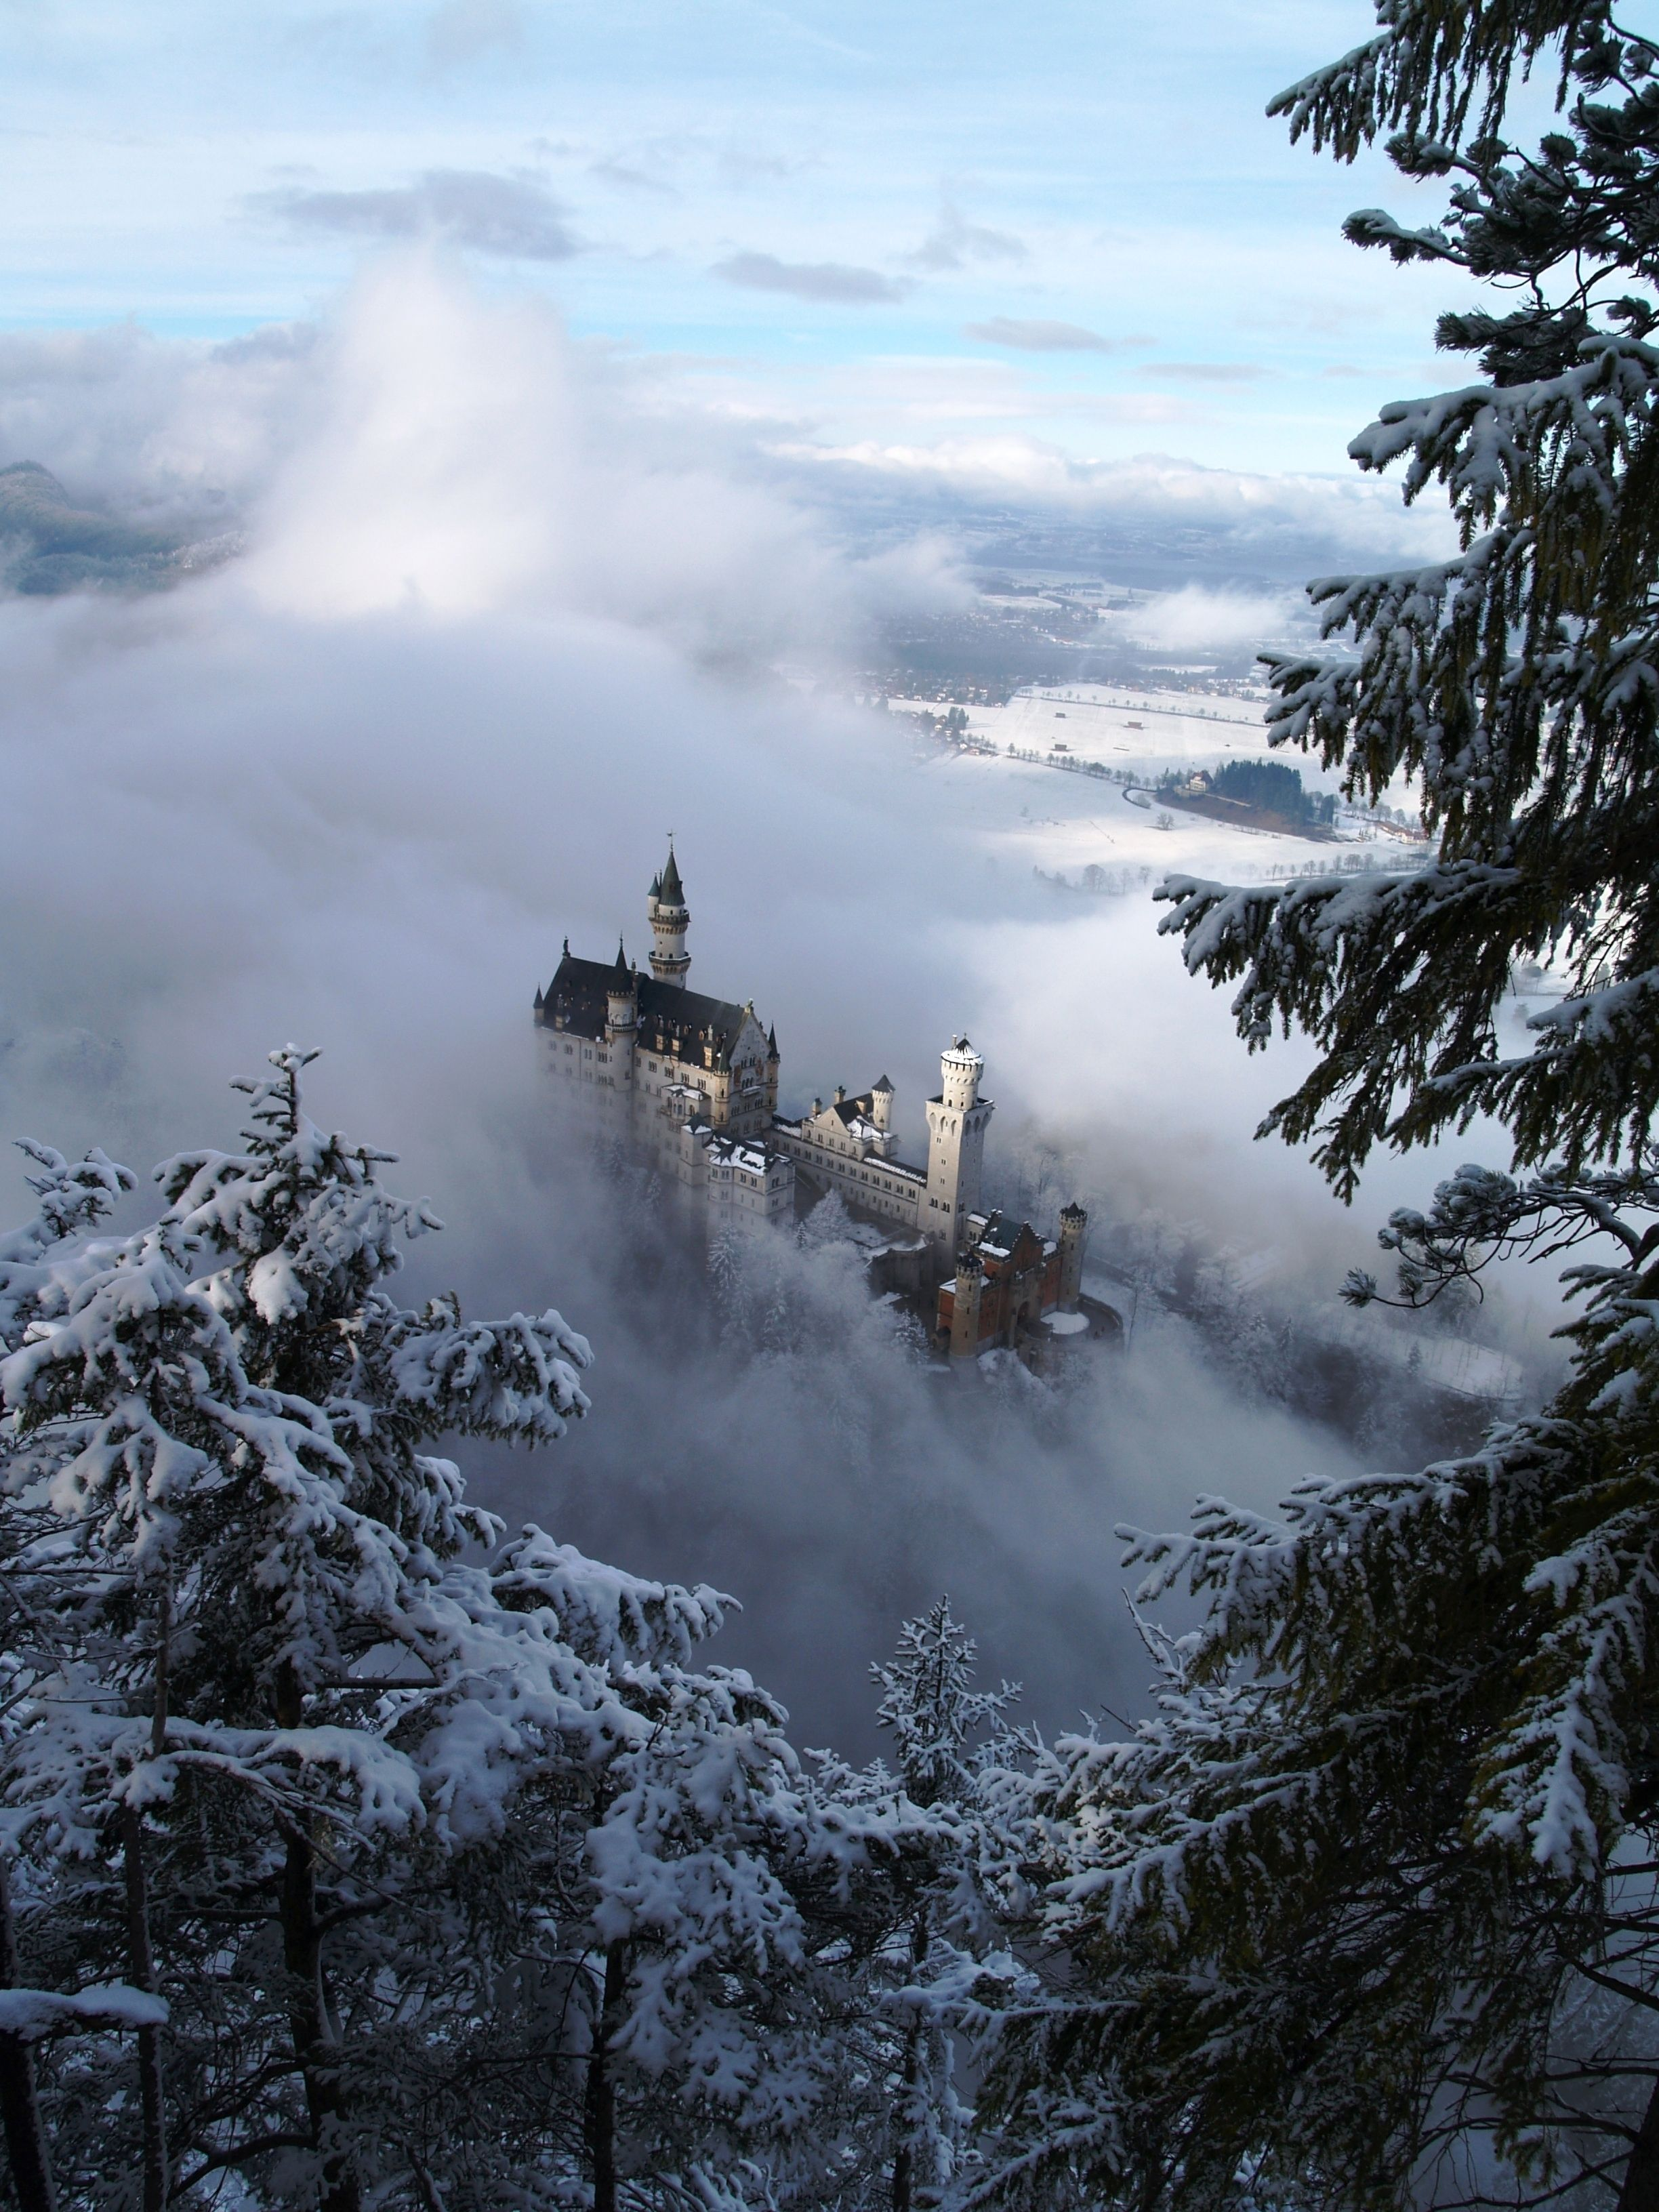 The Castle Rising From Out Of The Winter Mist Is Schloss Neuschwanstein Bavaria Germany Schreiner Beautiful Castles Neuschwanstein Castle Castle